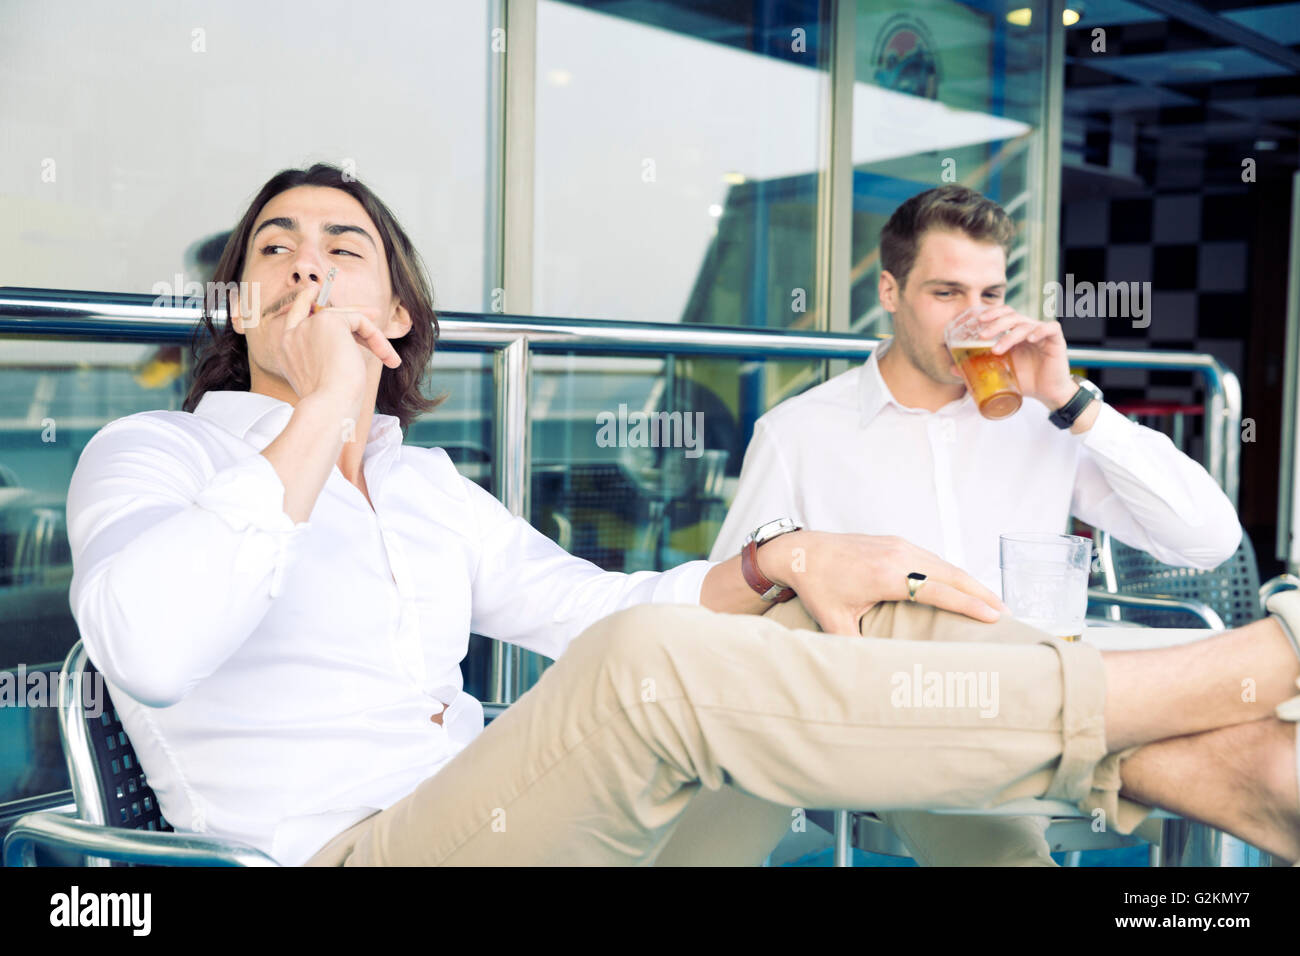 Two Young Men Smoking And Drinking Beer On Cruise Ship Stock Photo - Is there smoking on cruise ships